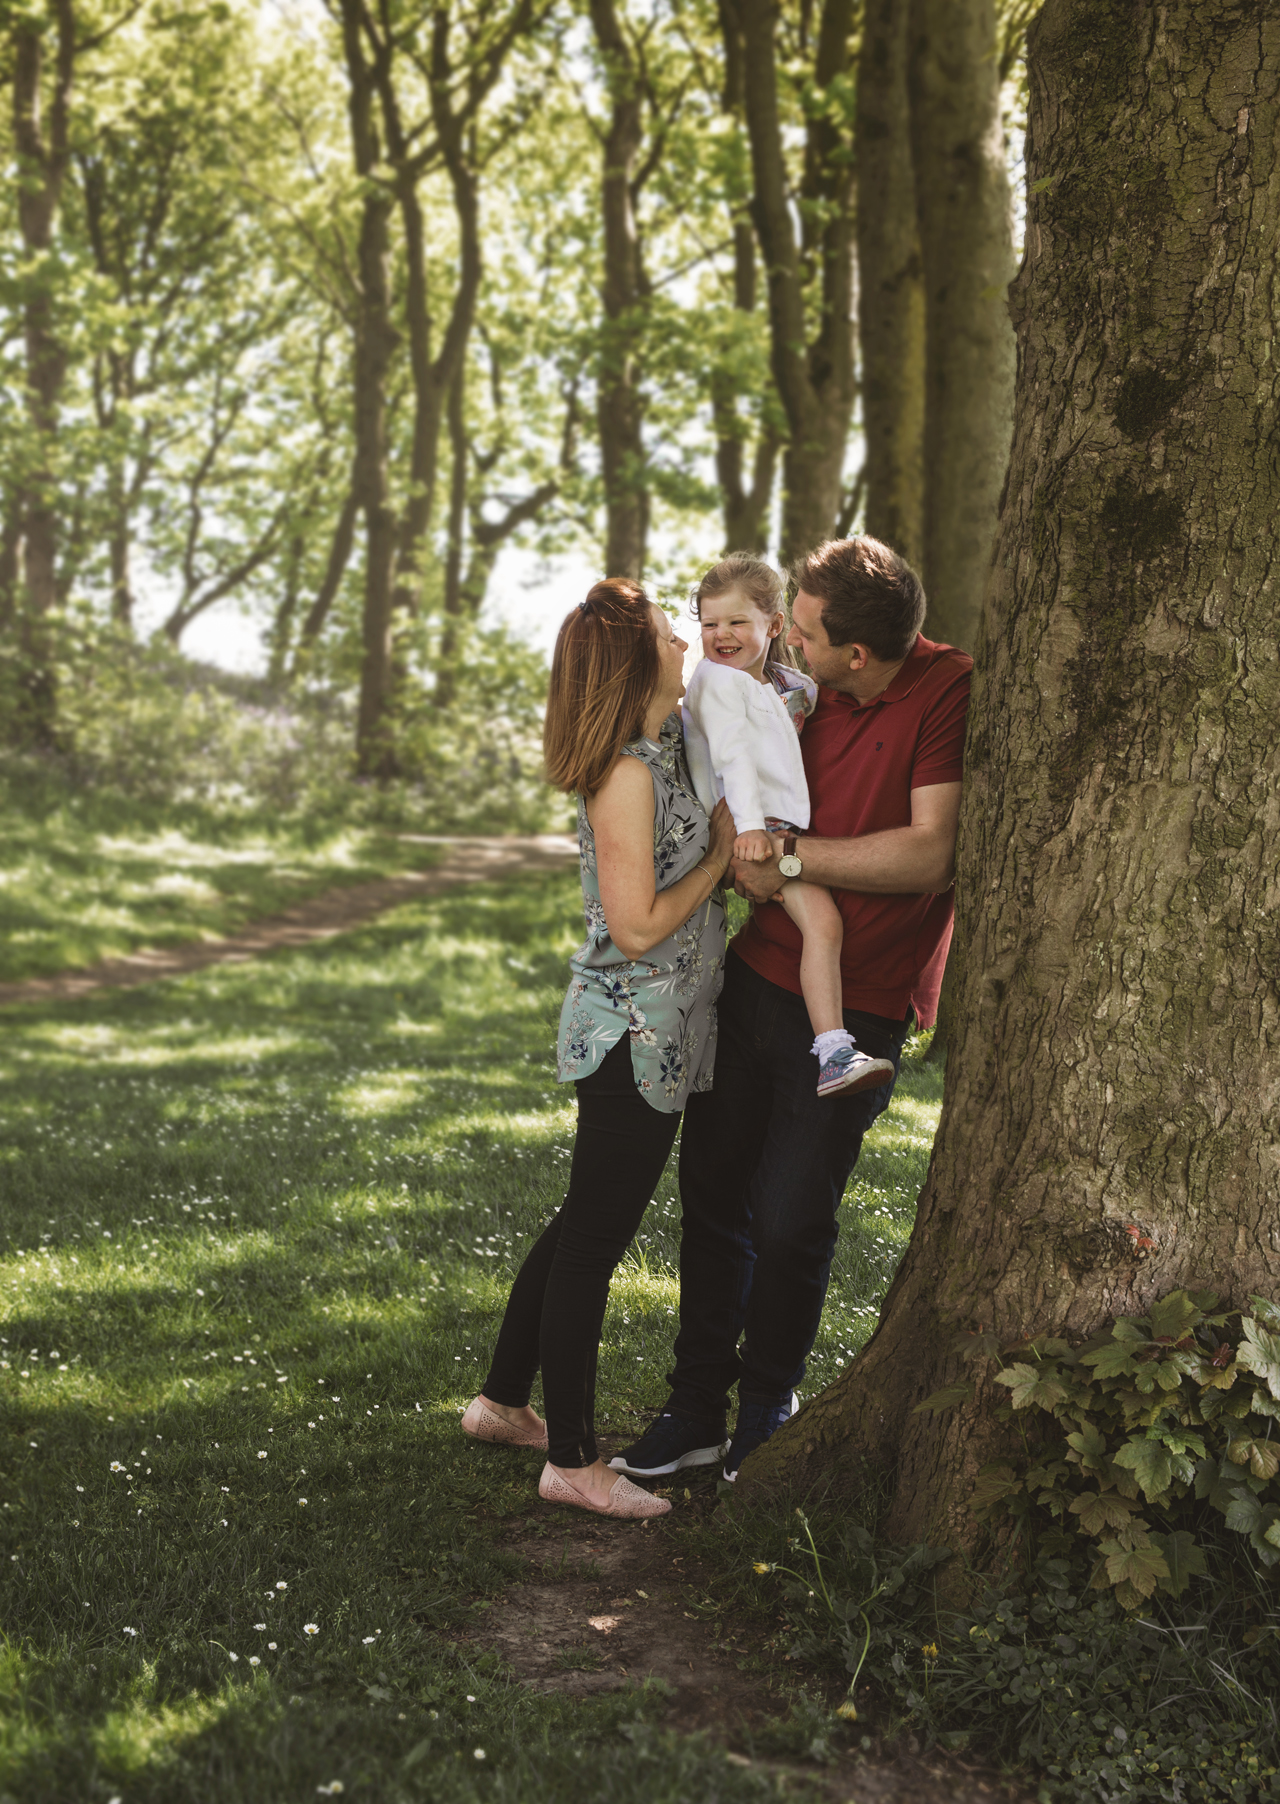 outdoor-photo-session-milnrow.jpg